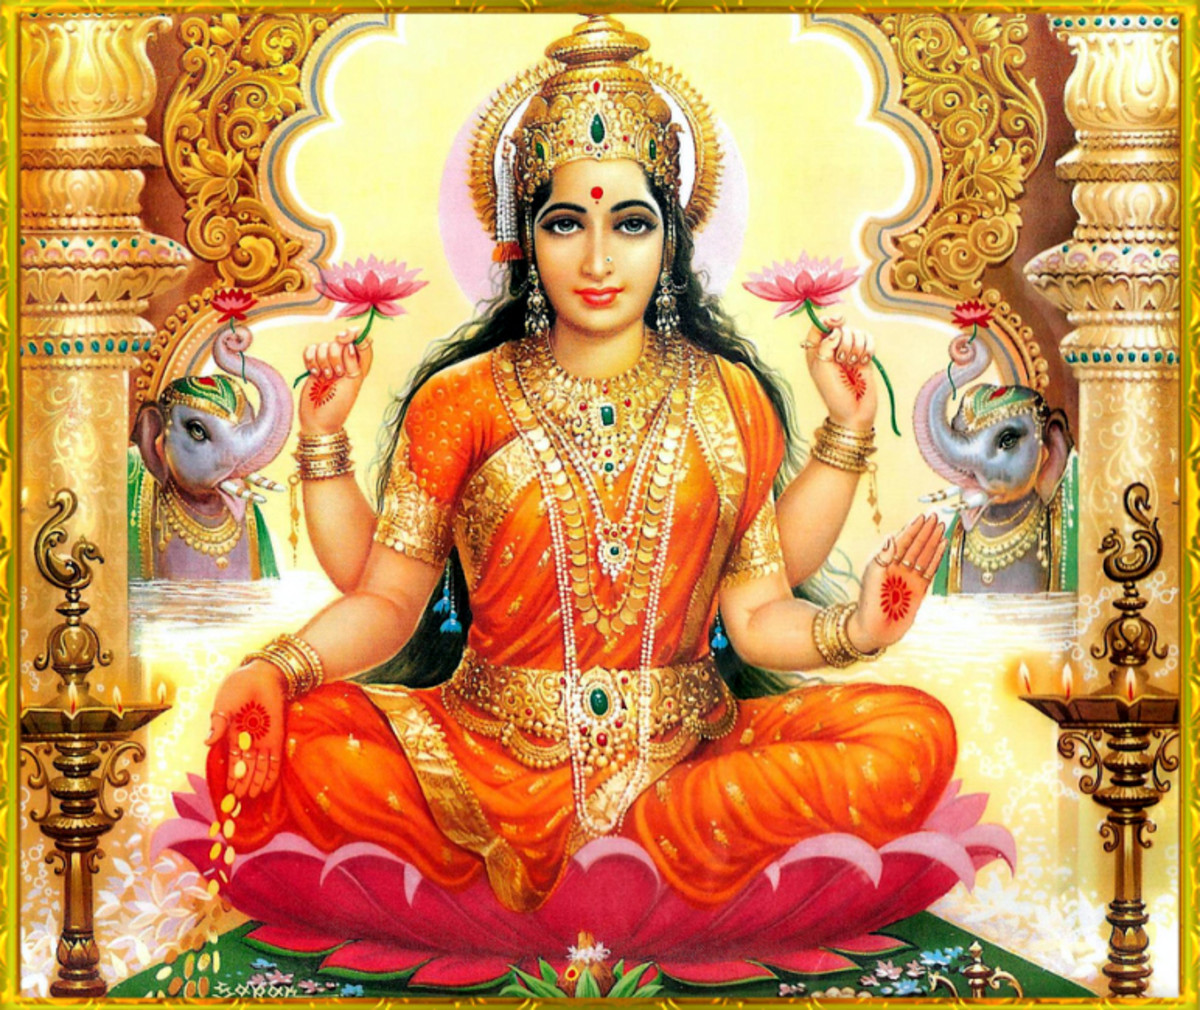 The Goddess Lakshmi